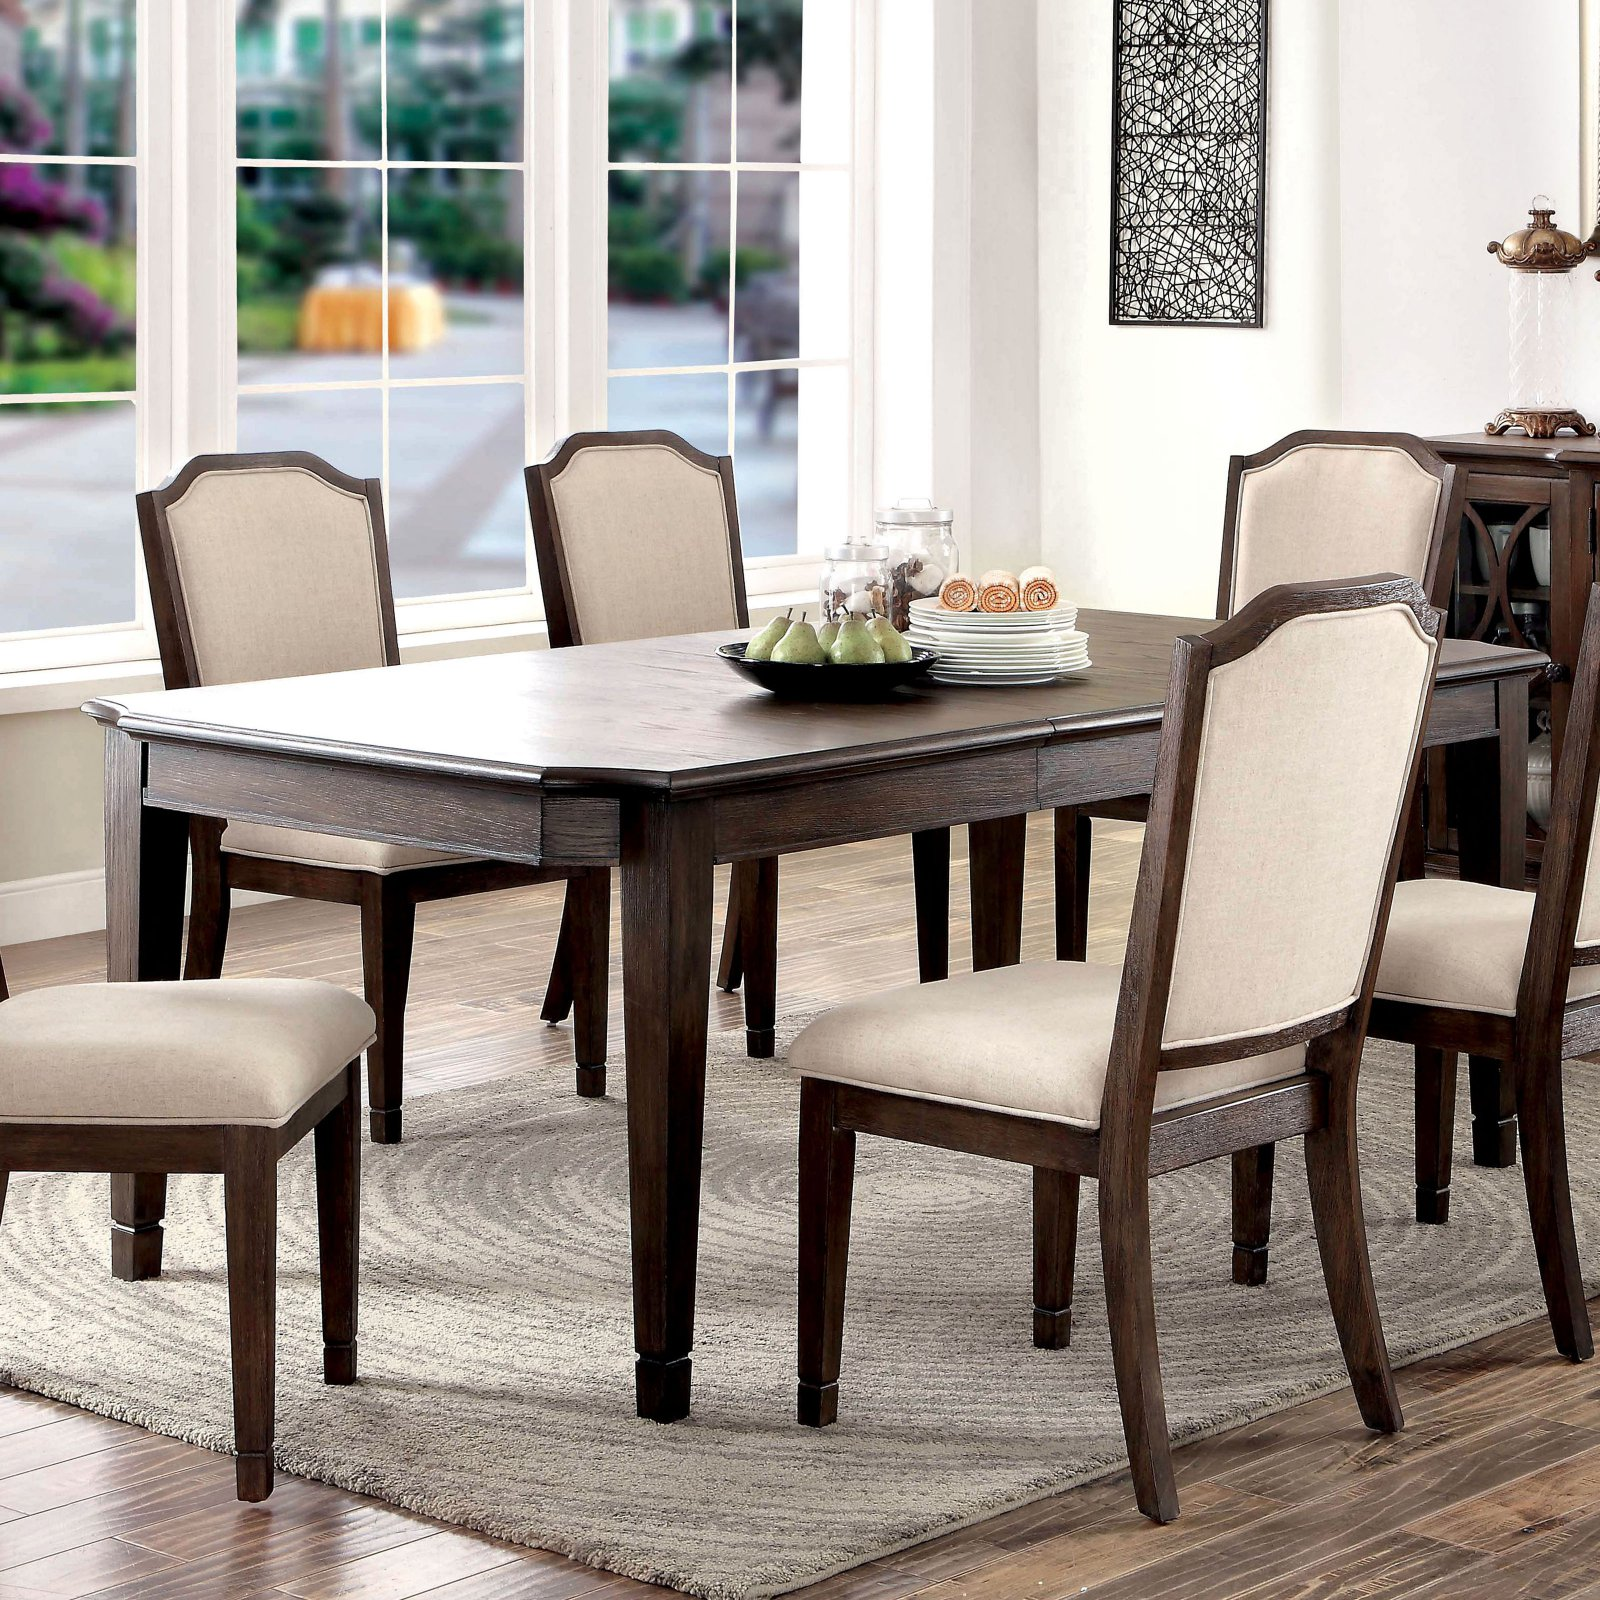 Furniture of America Dorin Dining Table